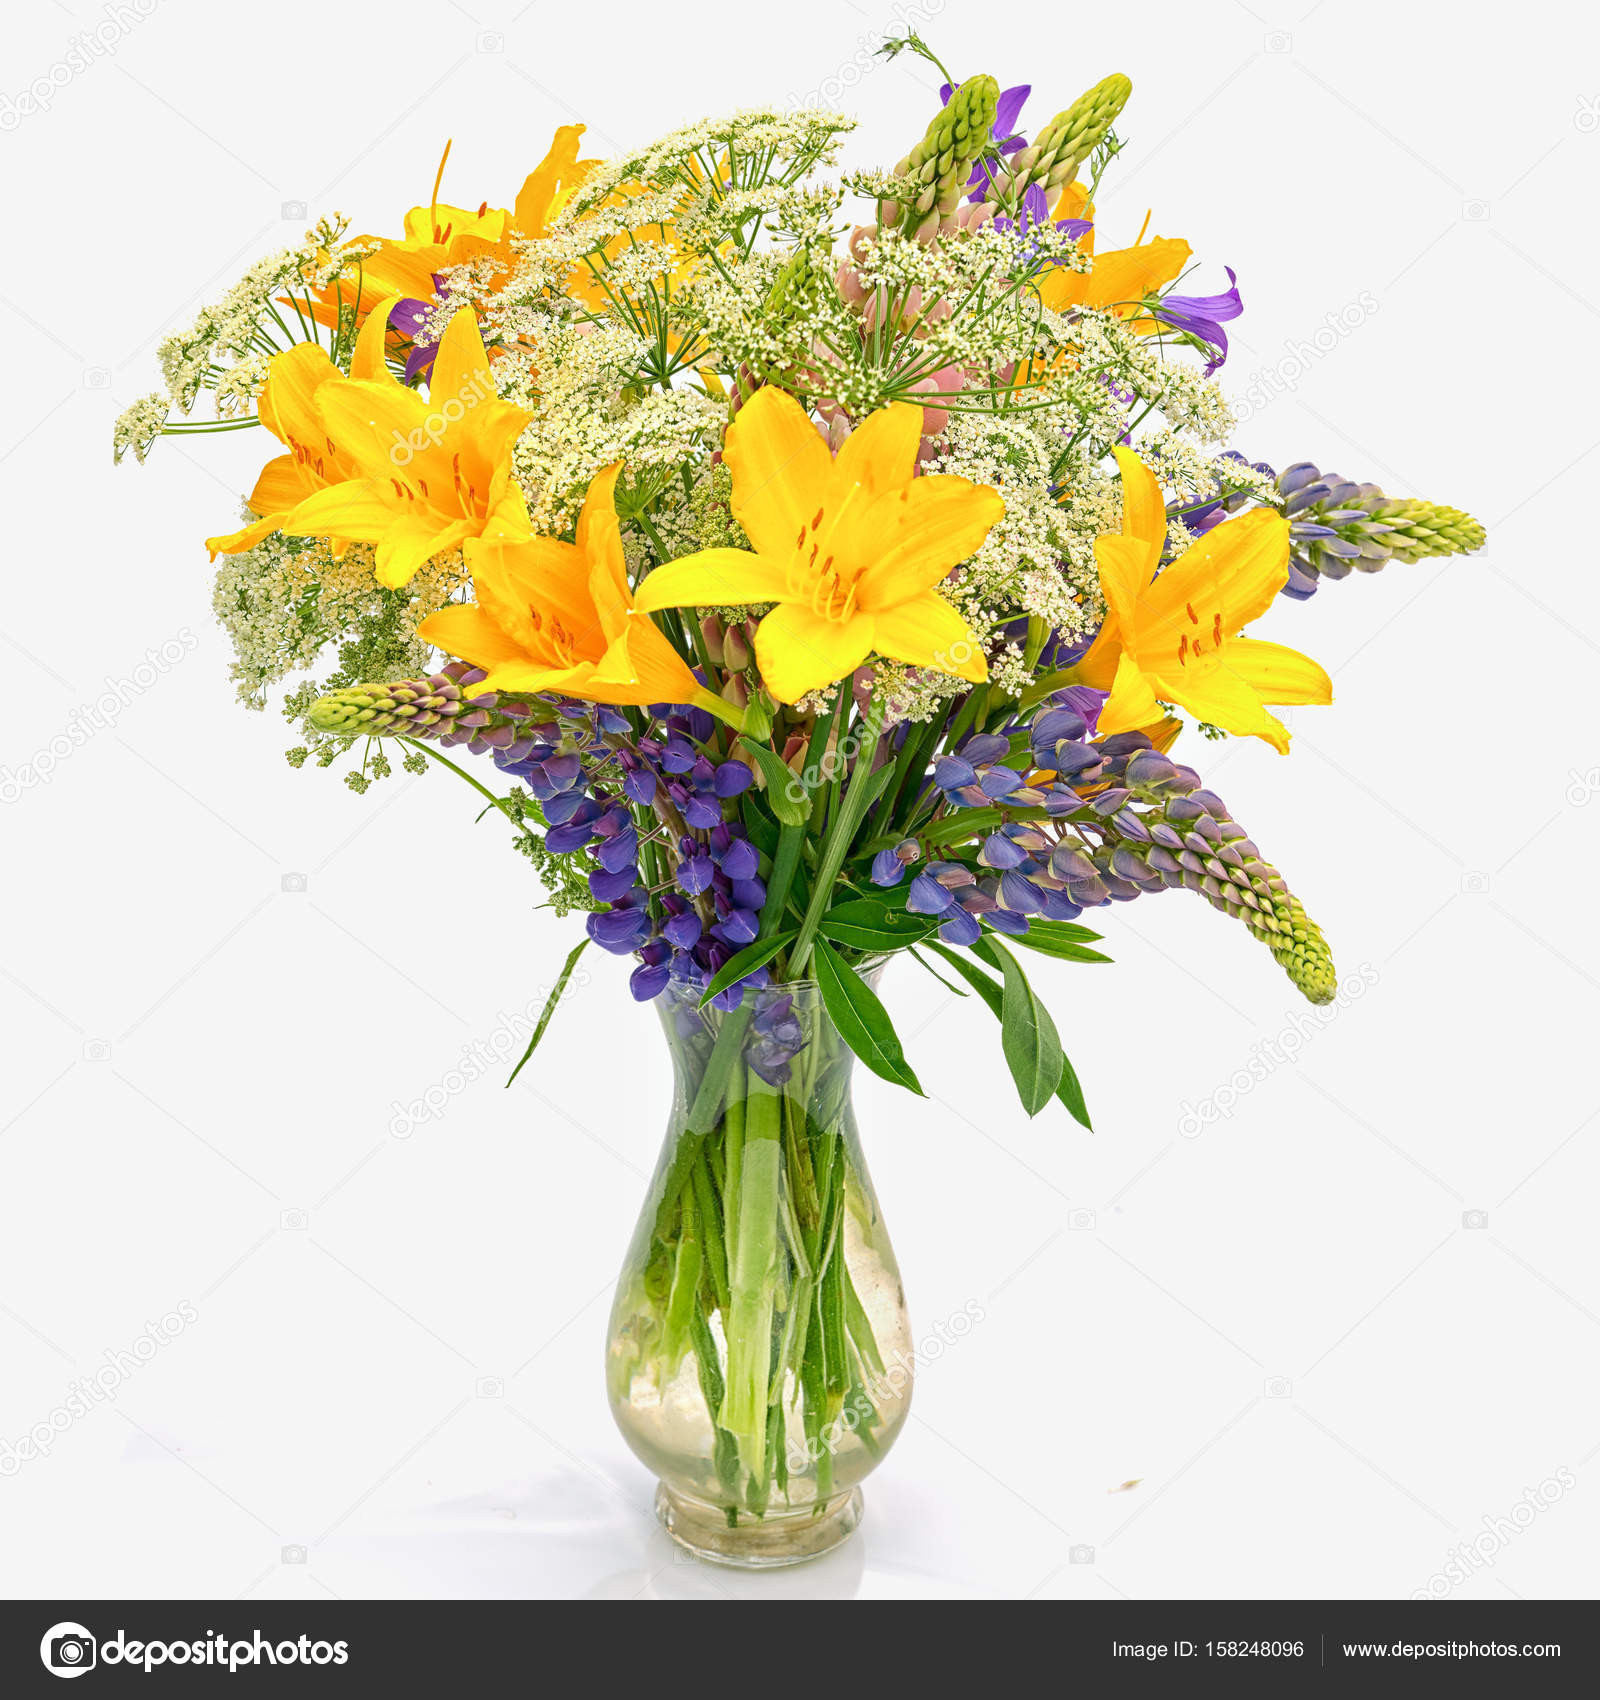 tall yellow vase of yellow flower vase gallery bouquet od wild flowers achillea pertaining to yellow flower vase gallery bouquet od wild flowers achillea millefolium day lily and lupine of yellow